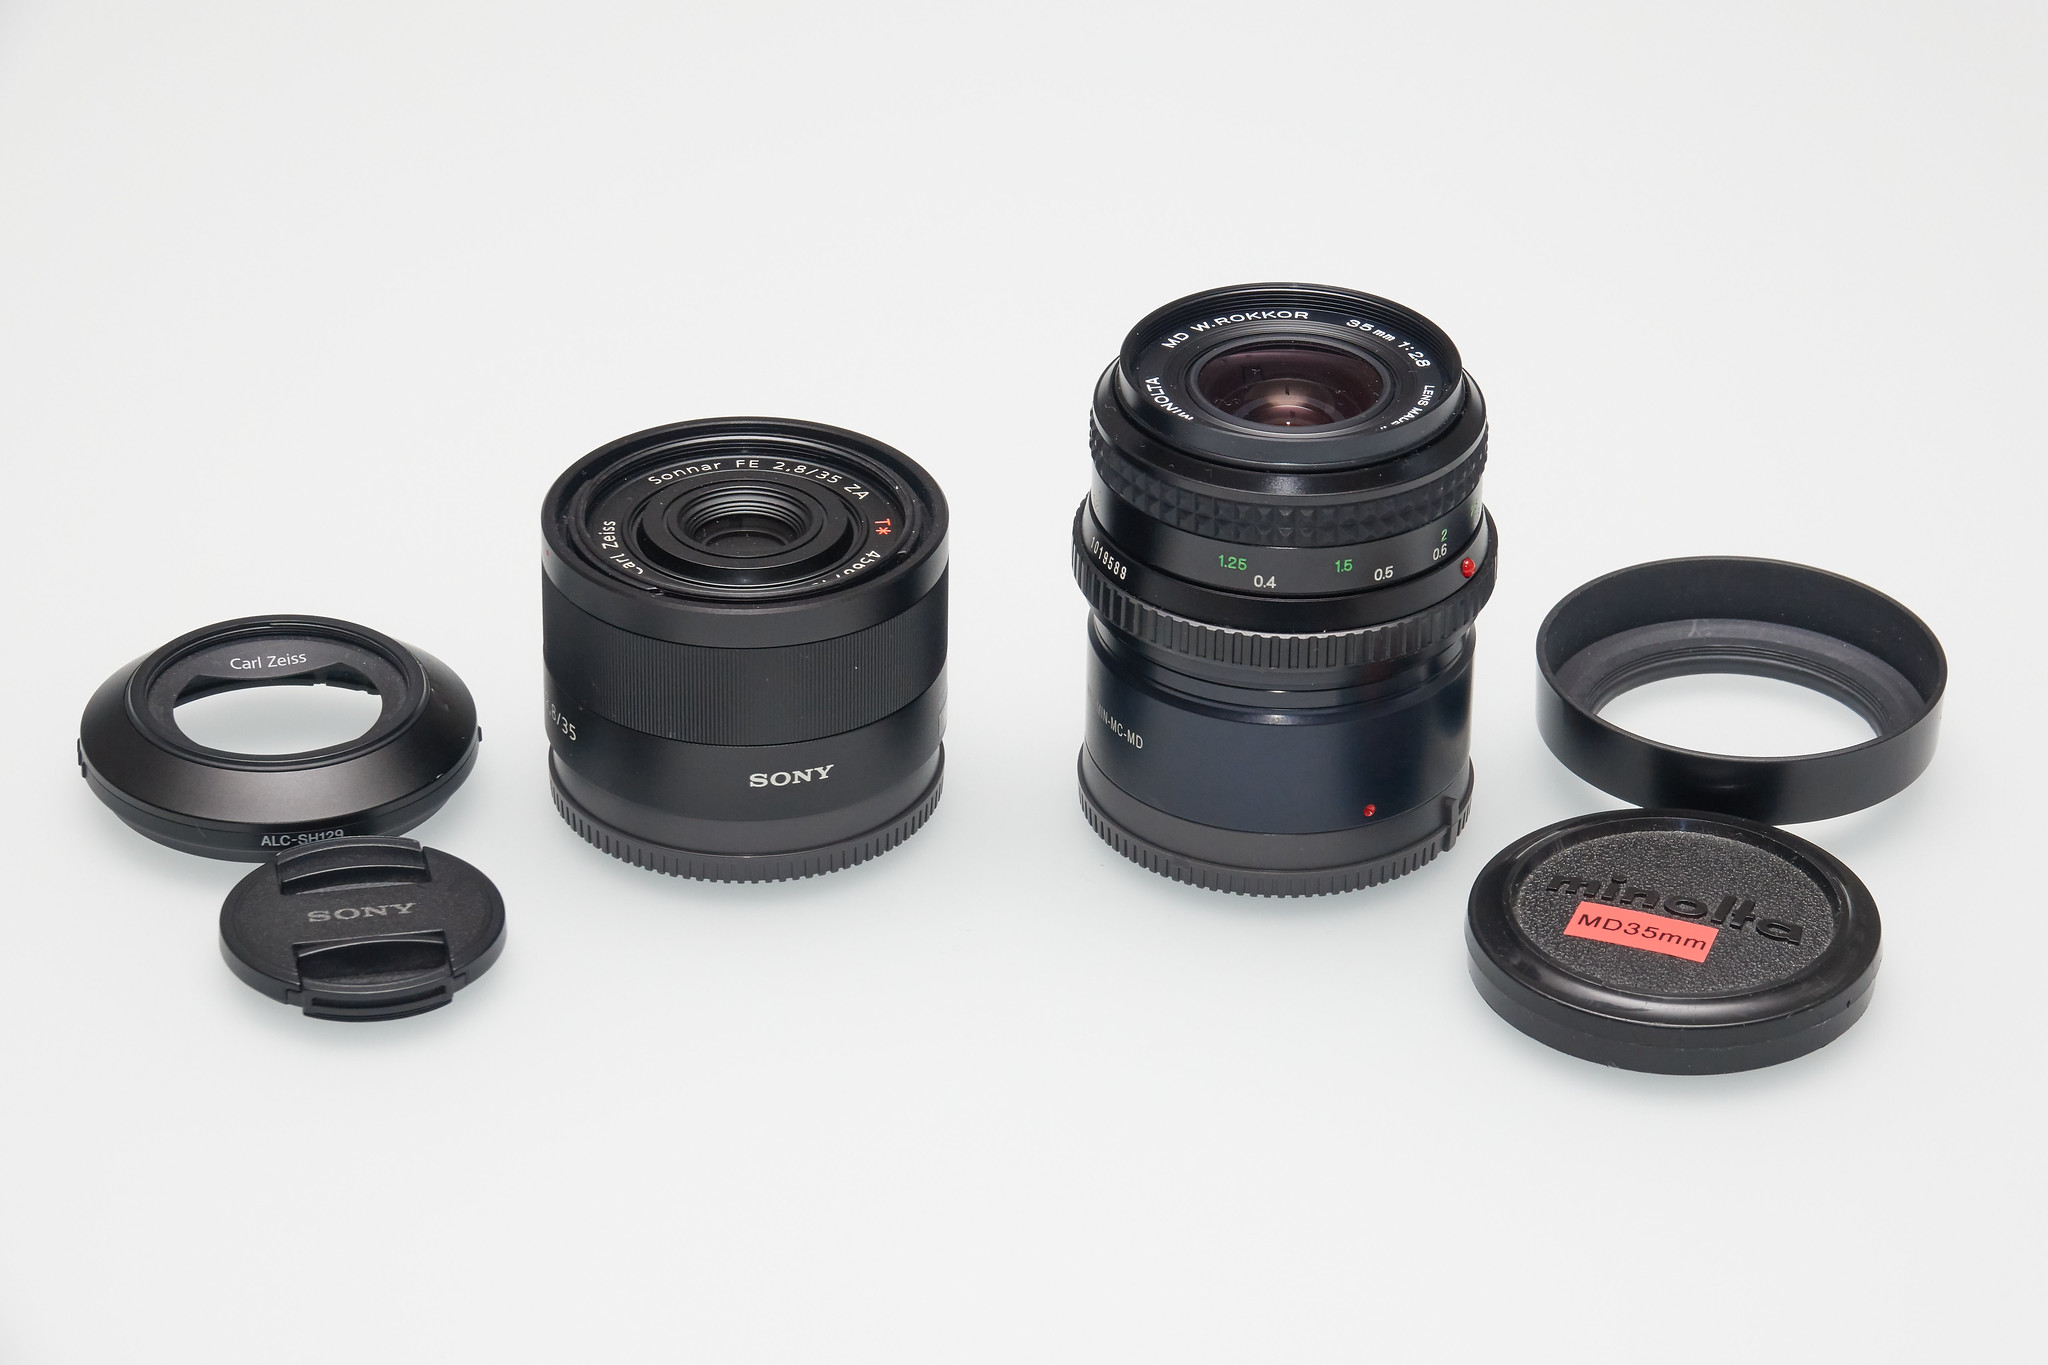 size comparison Sony Sonnar T* FE 35mm F2.8 ZA vs. Minolta MD W. Rokkor 35mm F2.8